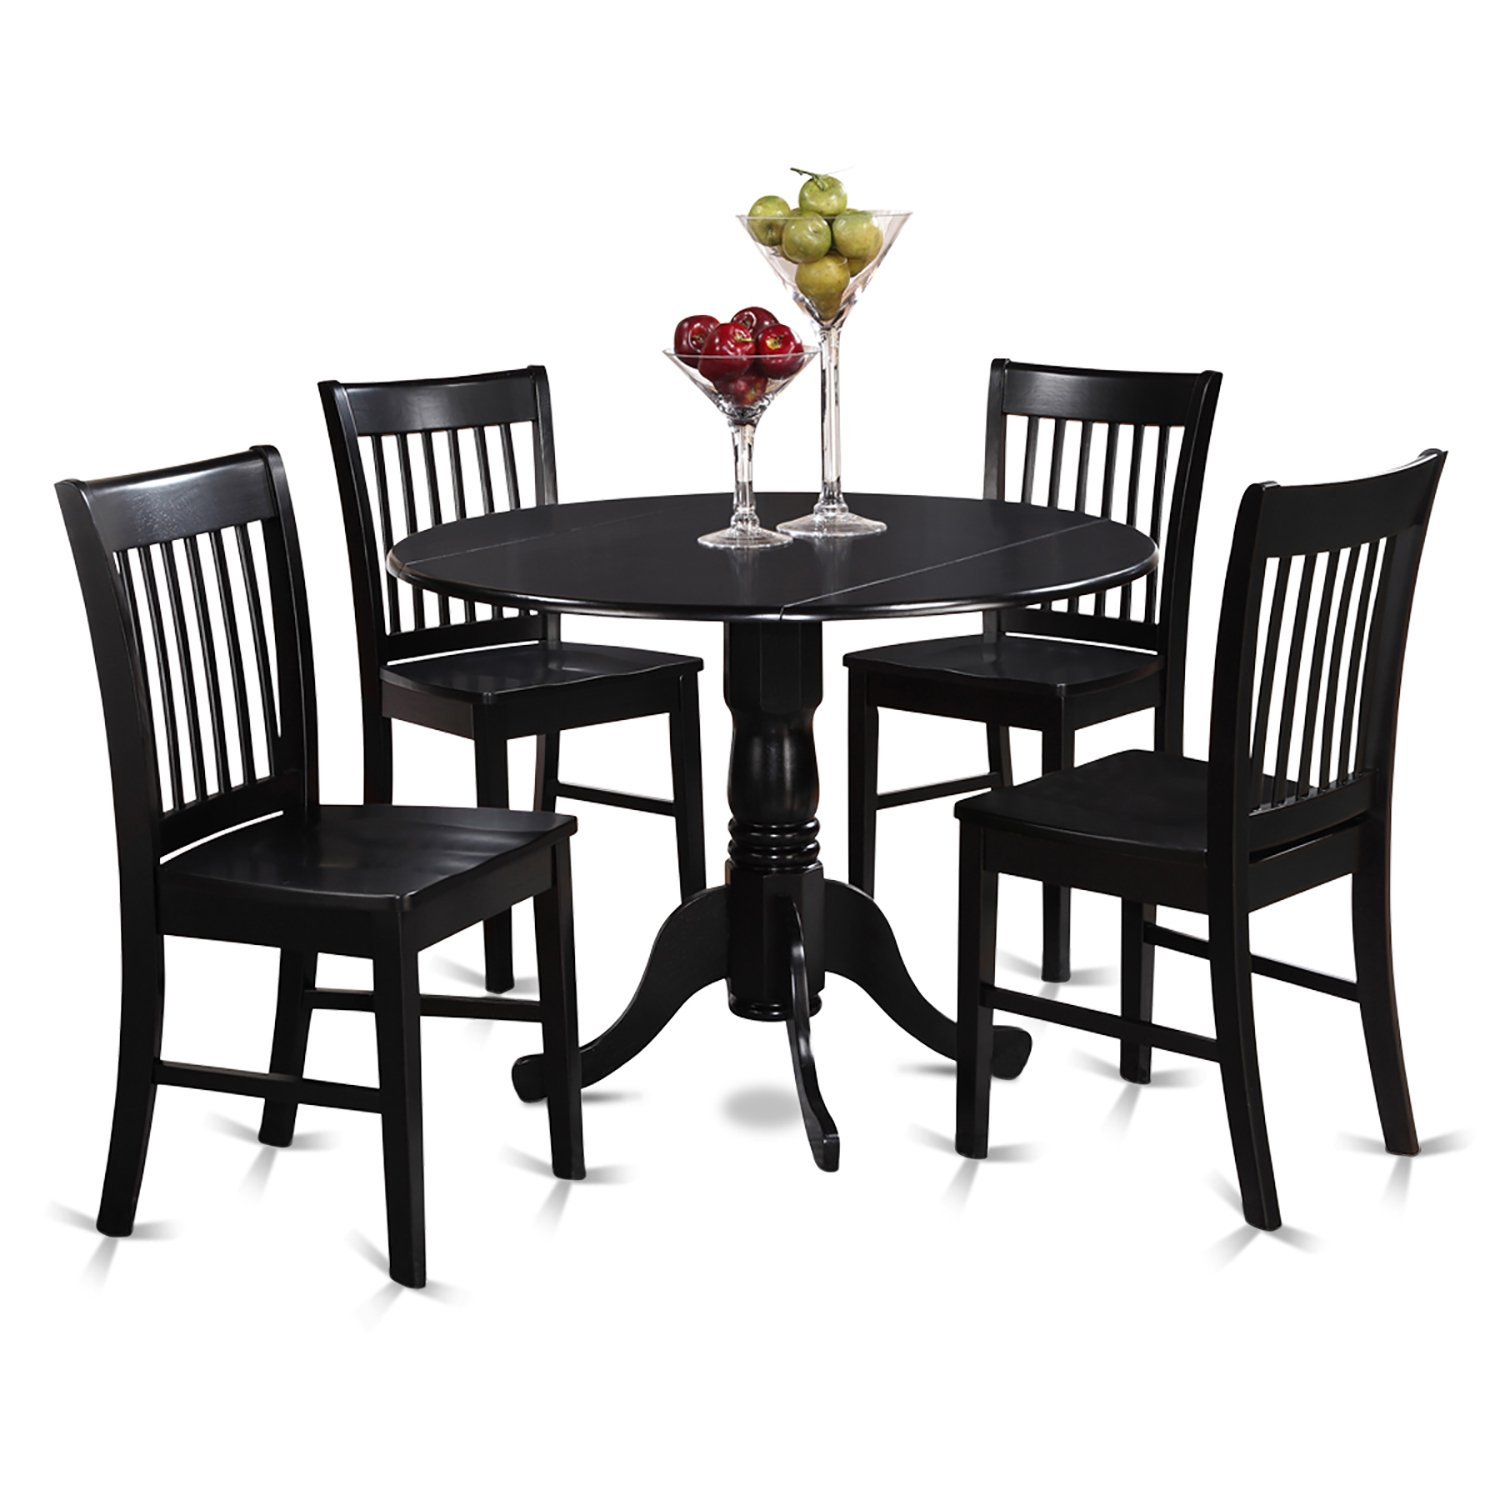 East West Furniture DLNO5-BLK-W 5-Piece Kitchen Table and Chairs Set, Black Finish by East West Furniture